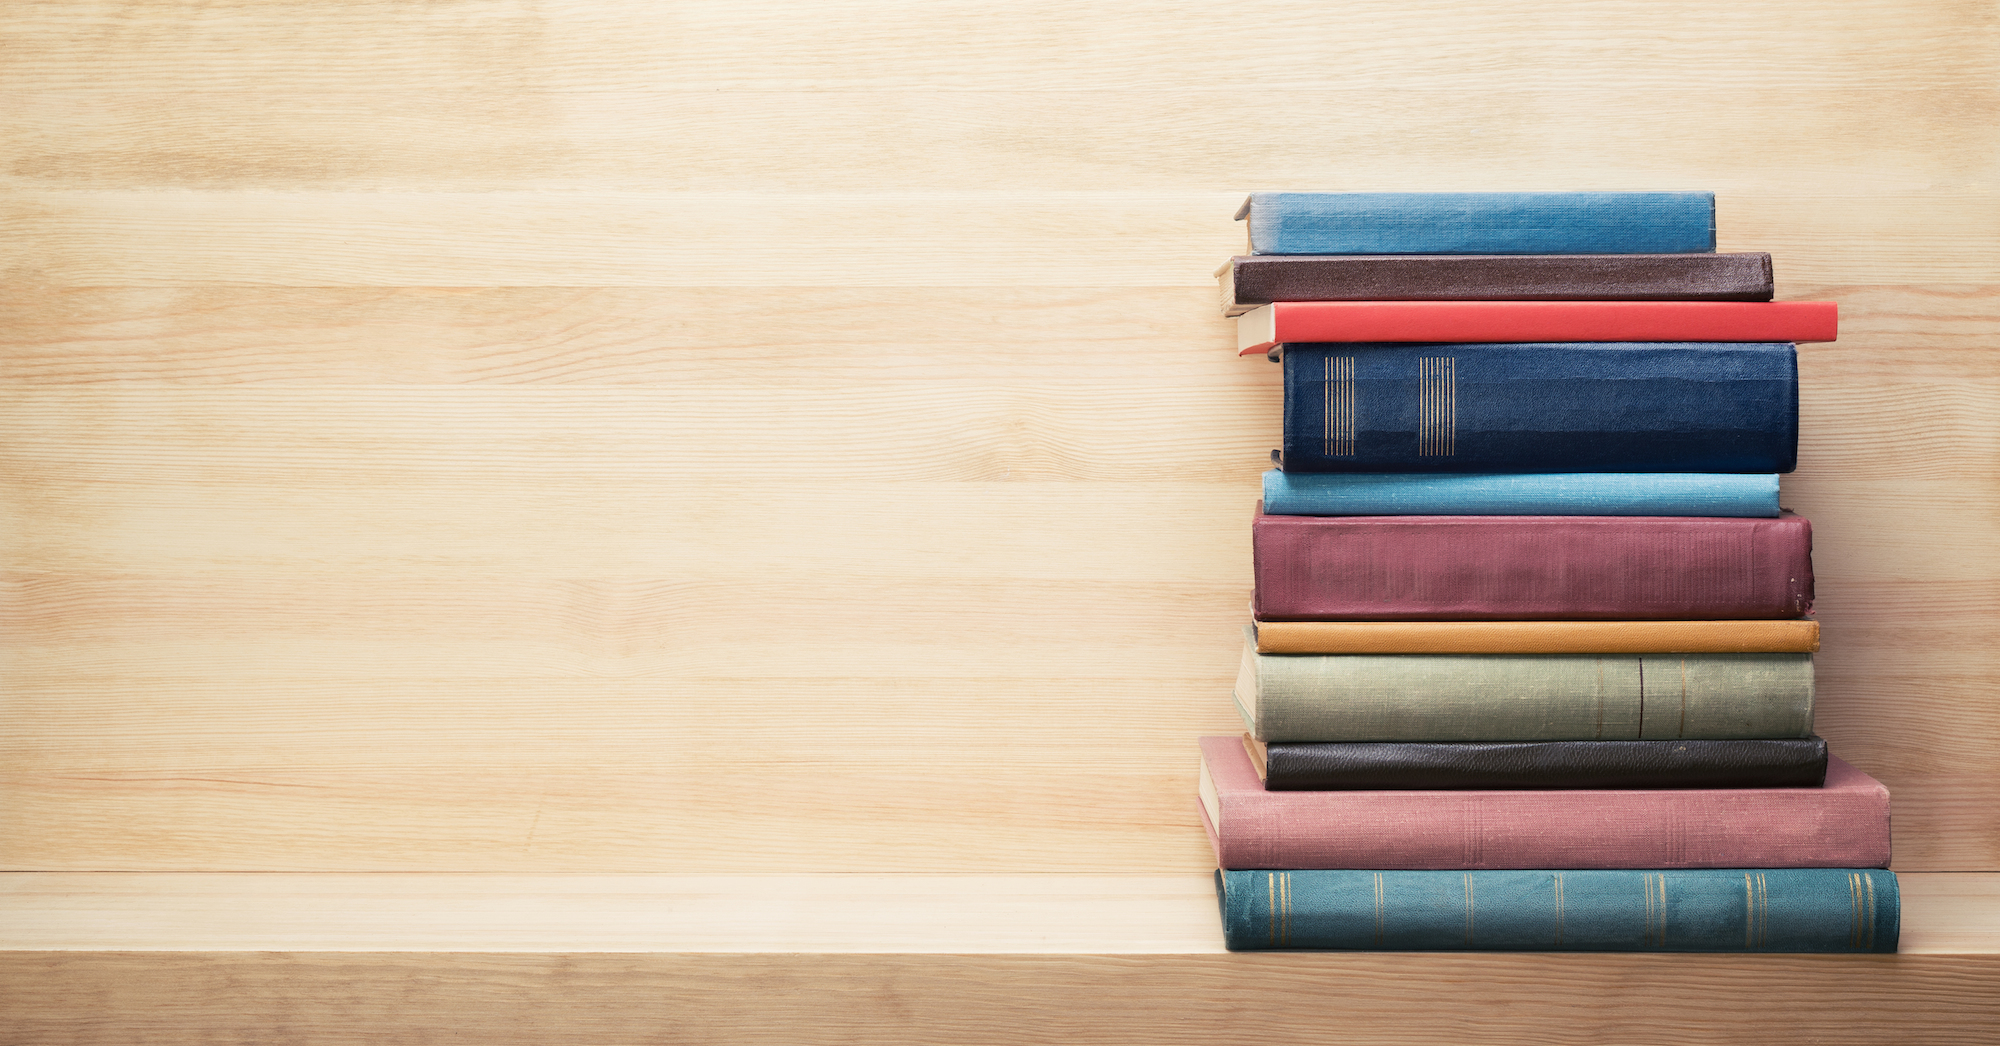 25 Business Books that You Won't See on Most Bookshelves